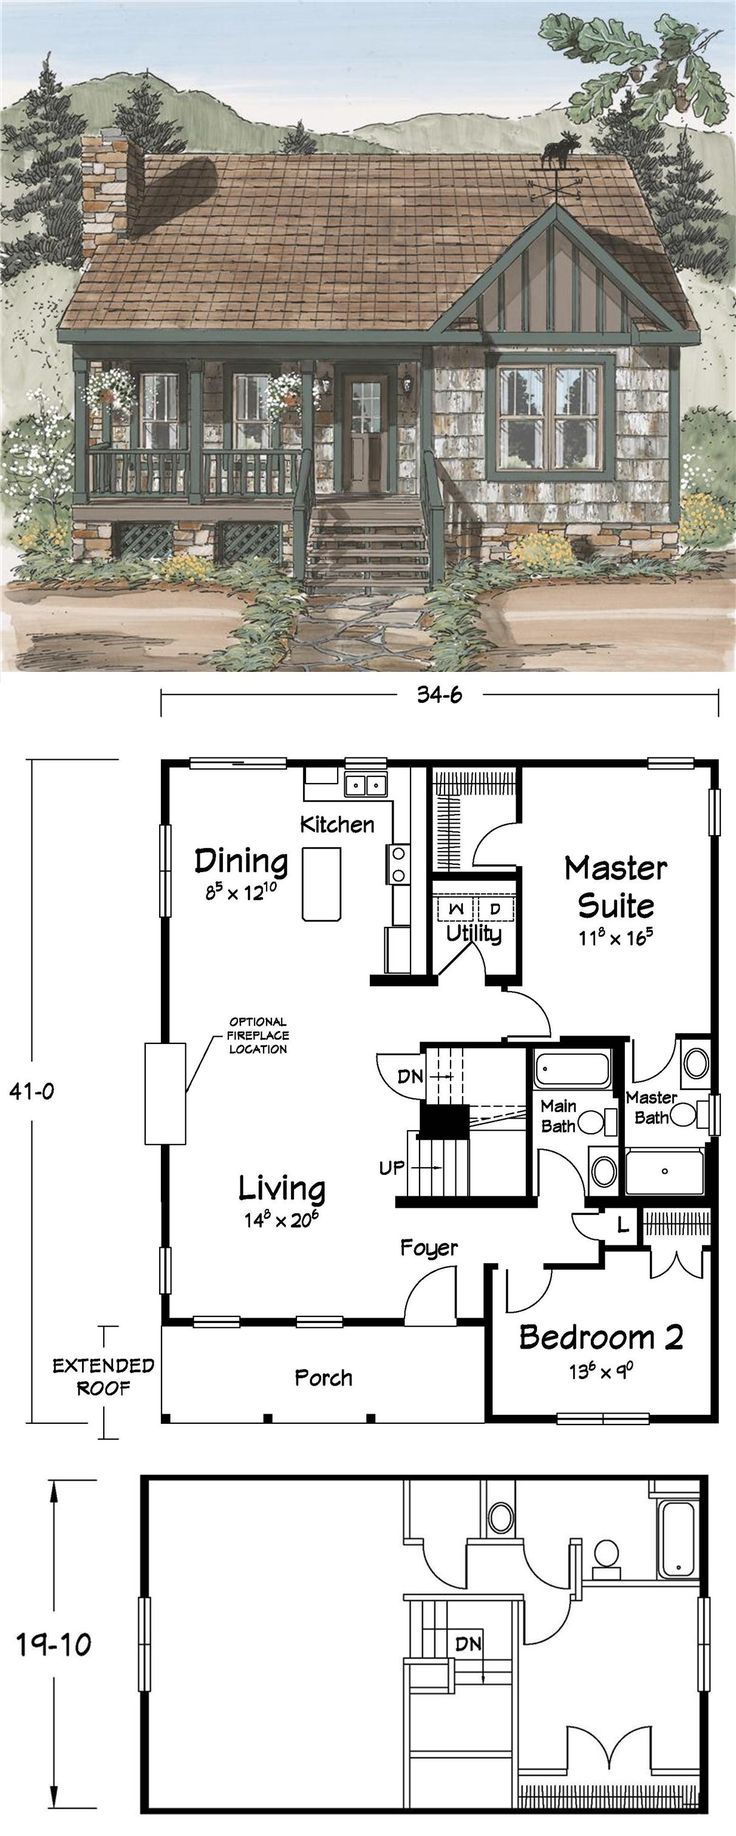 Cute floor plans tiny homes pinterest cabin small for Tiny cottage house plans